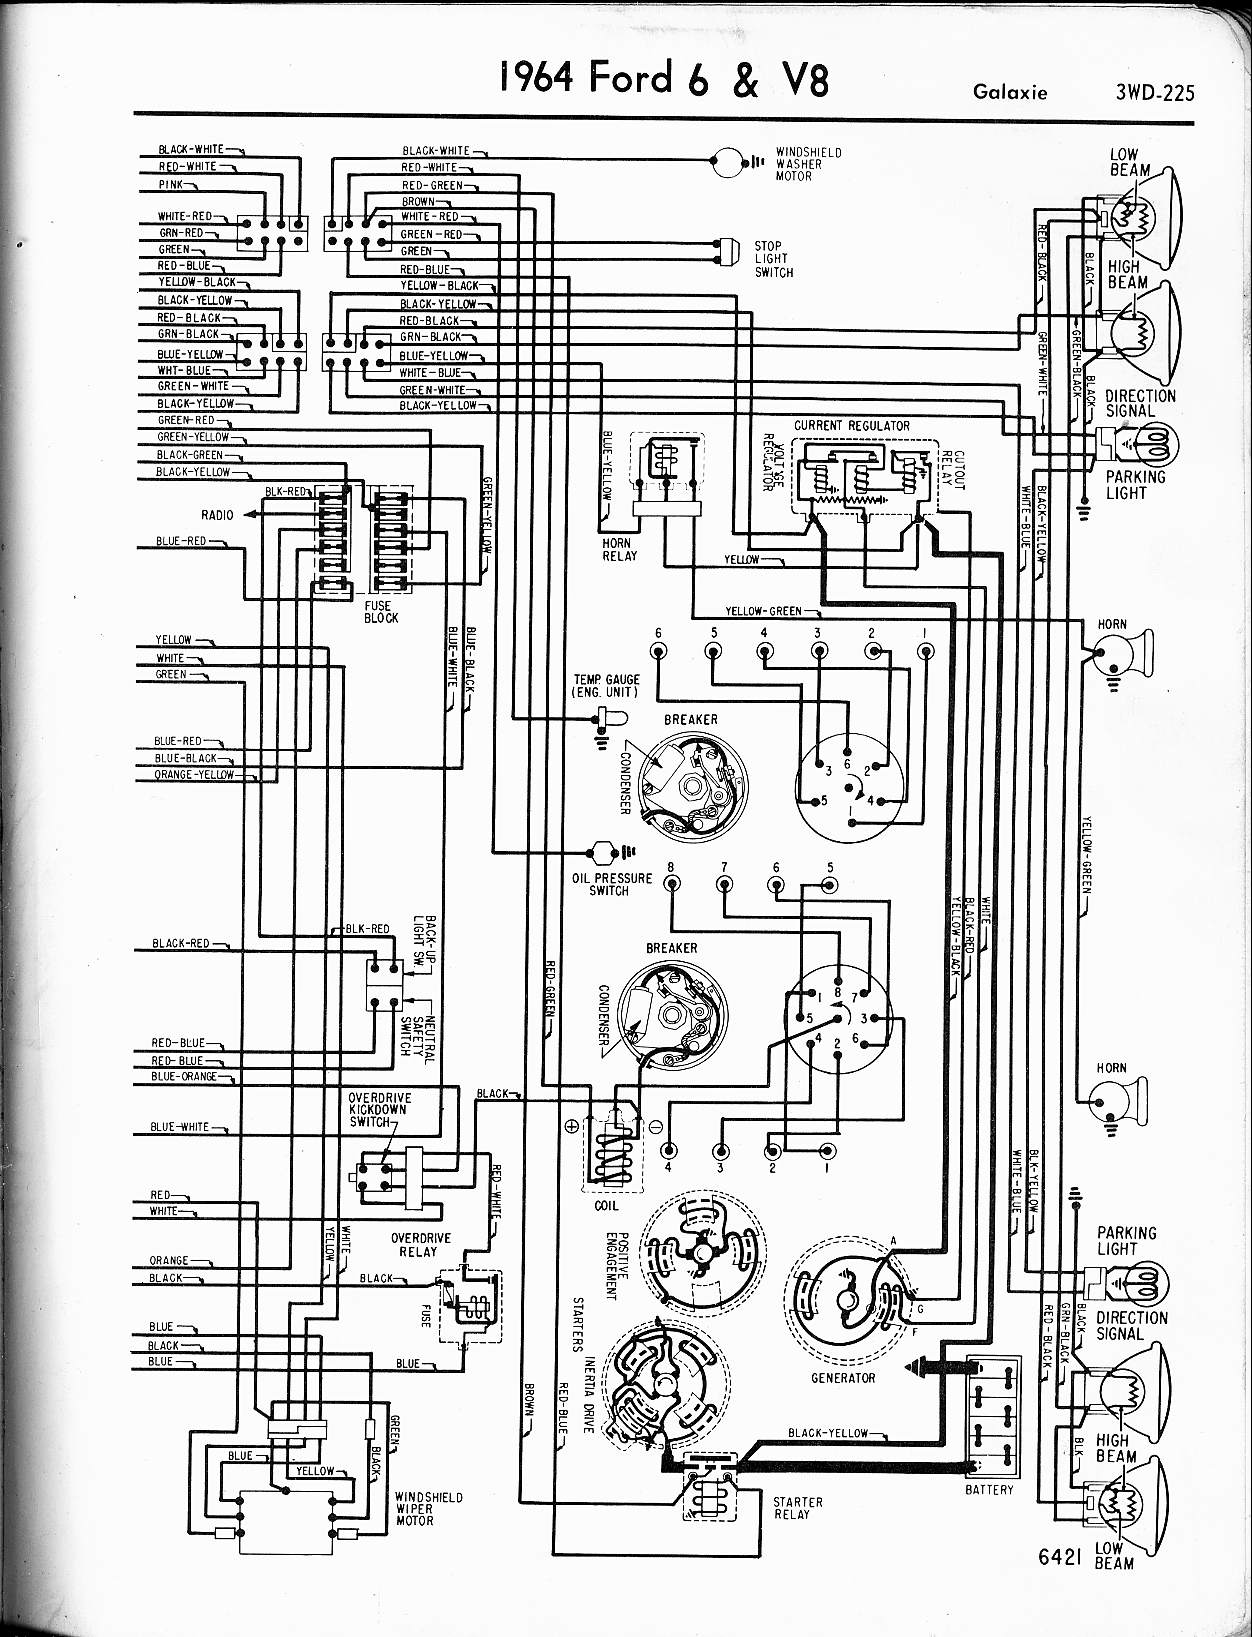 MWire5765 225 57 65 ford wiring diagrams 1971 El Camino Wiring Harness at gsmportal.co